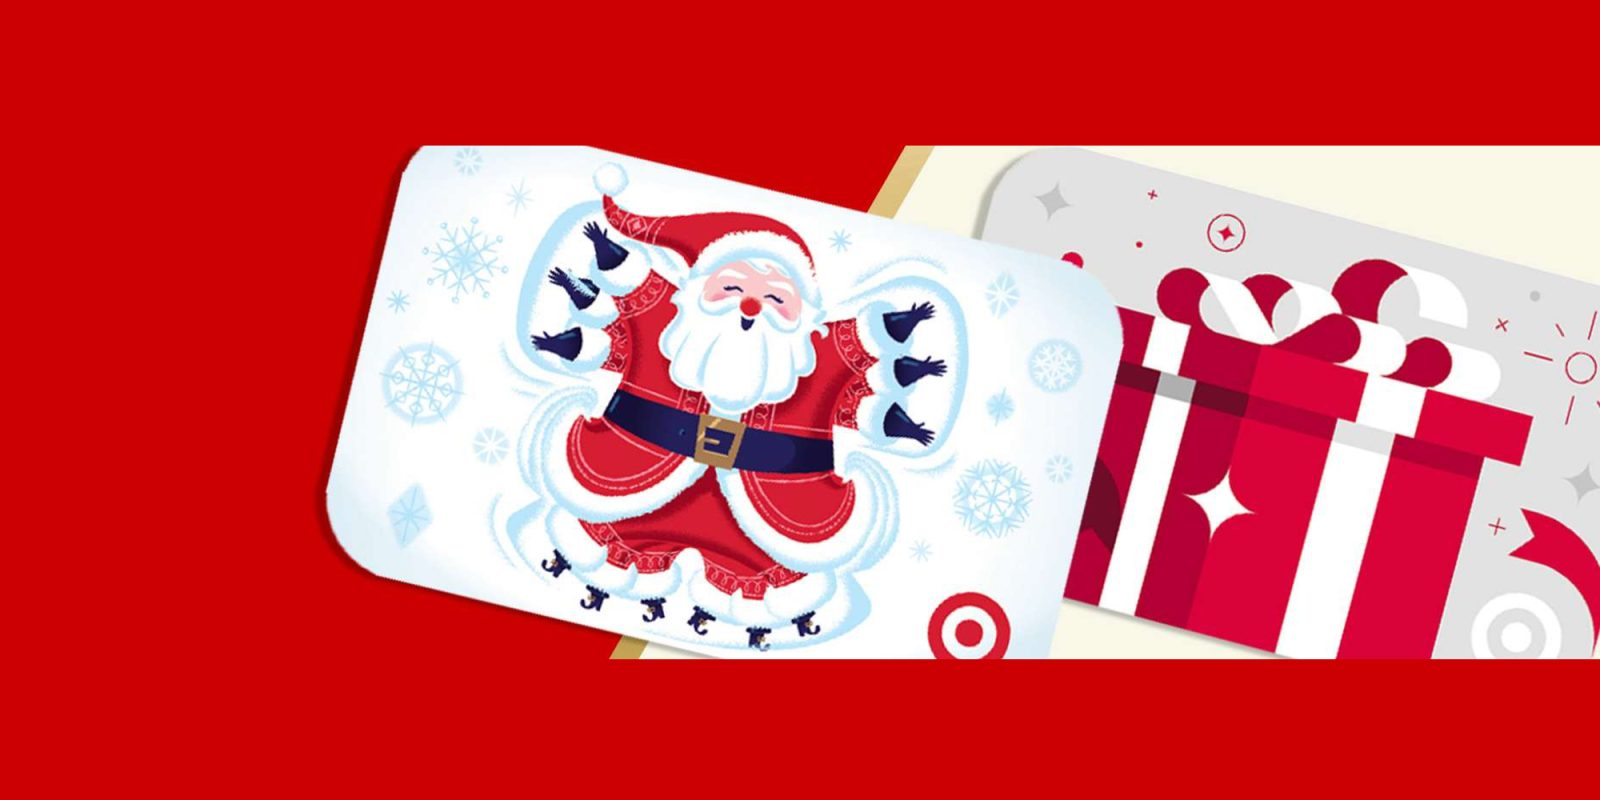 Today only, save 10% on Target gift cards and score some free money ...